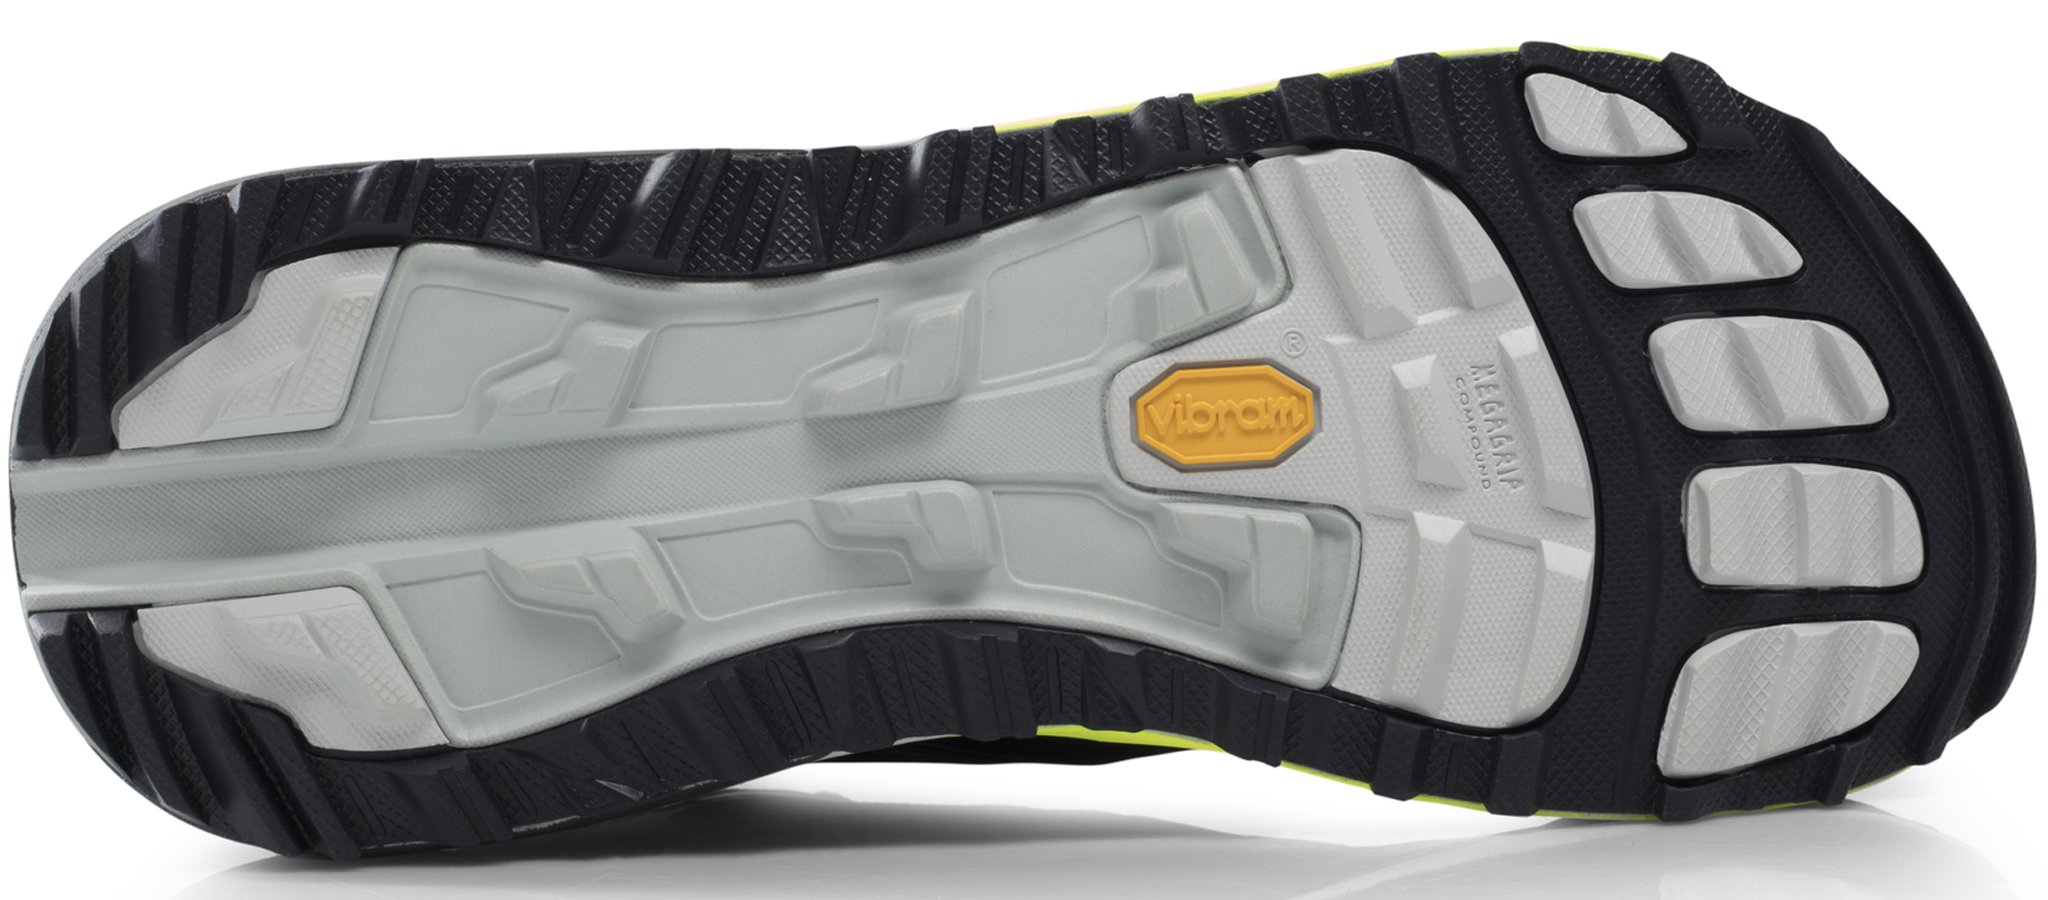 Altra AFM1859F Men's Olympus 3 Running Shoe, Black/Yellow - 11 D(M) US by Altra (Image #4)